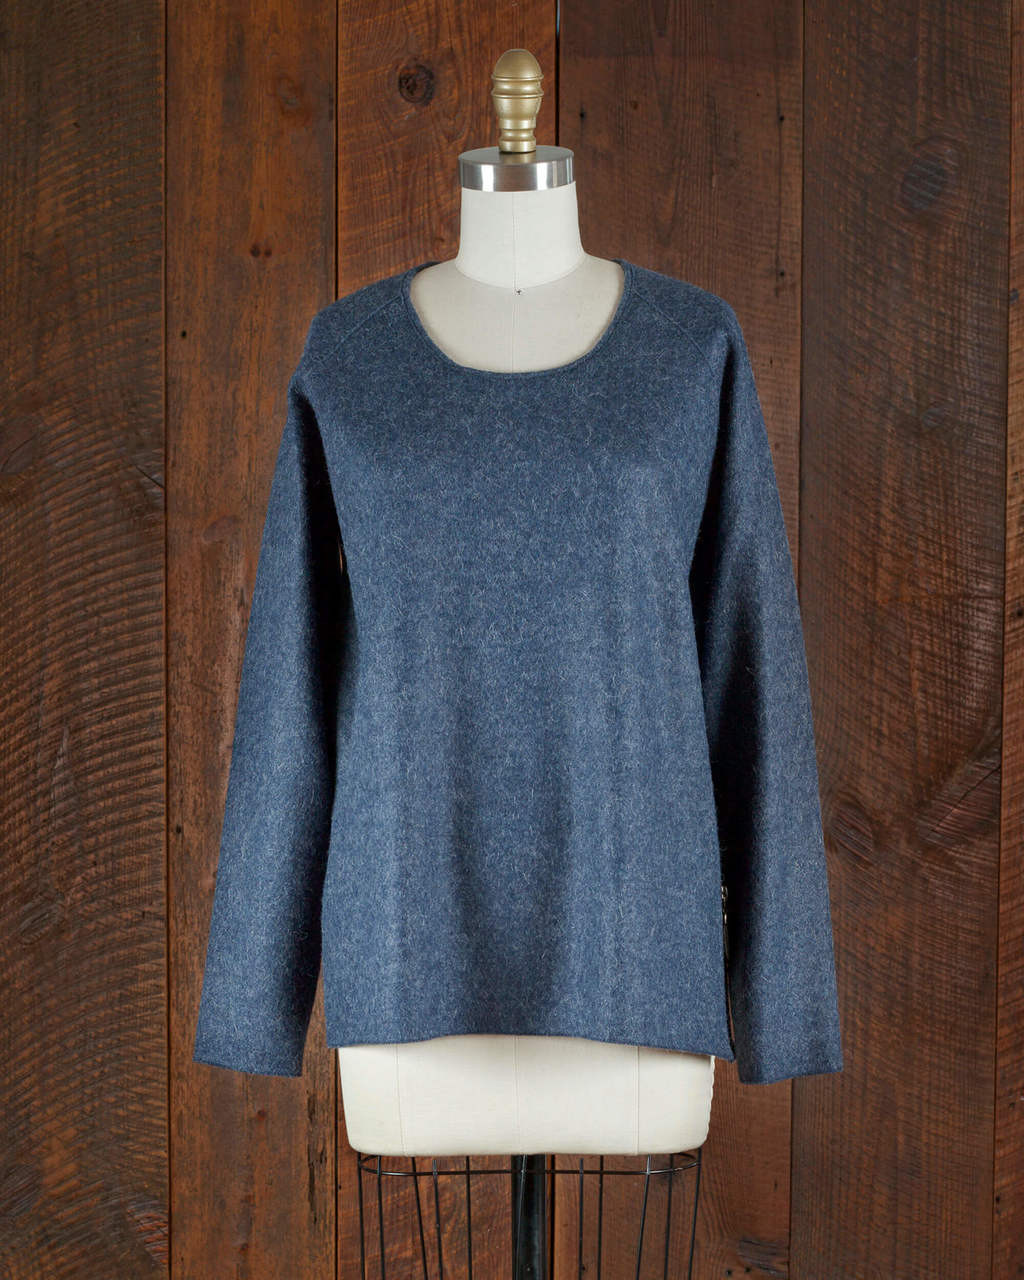 Alicia Adams Alpaca Verbier Side Zip, alpaca sweaters womens, alpaca clothing, baby alpaca sweater, alpaca vs cashmere, denim blue alpaca sweater